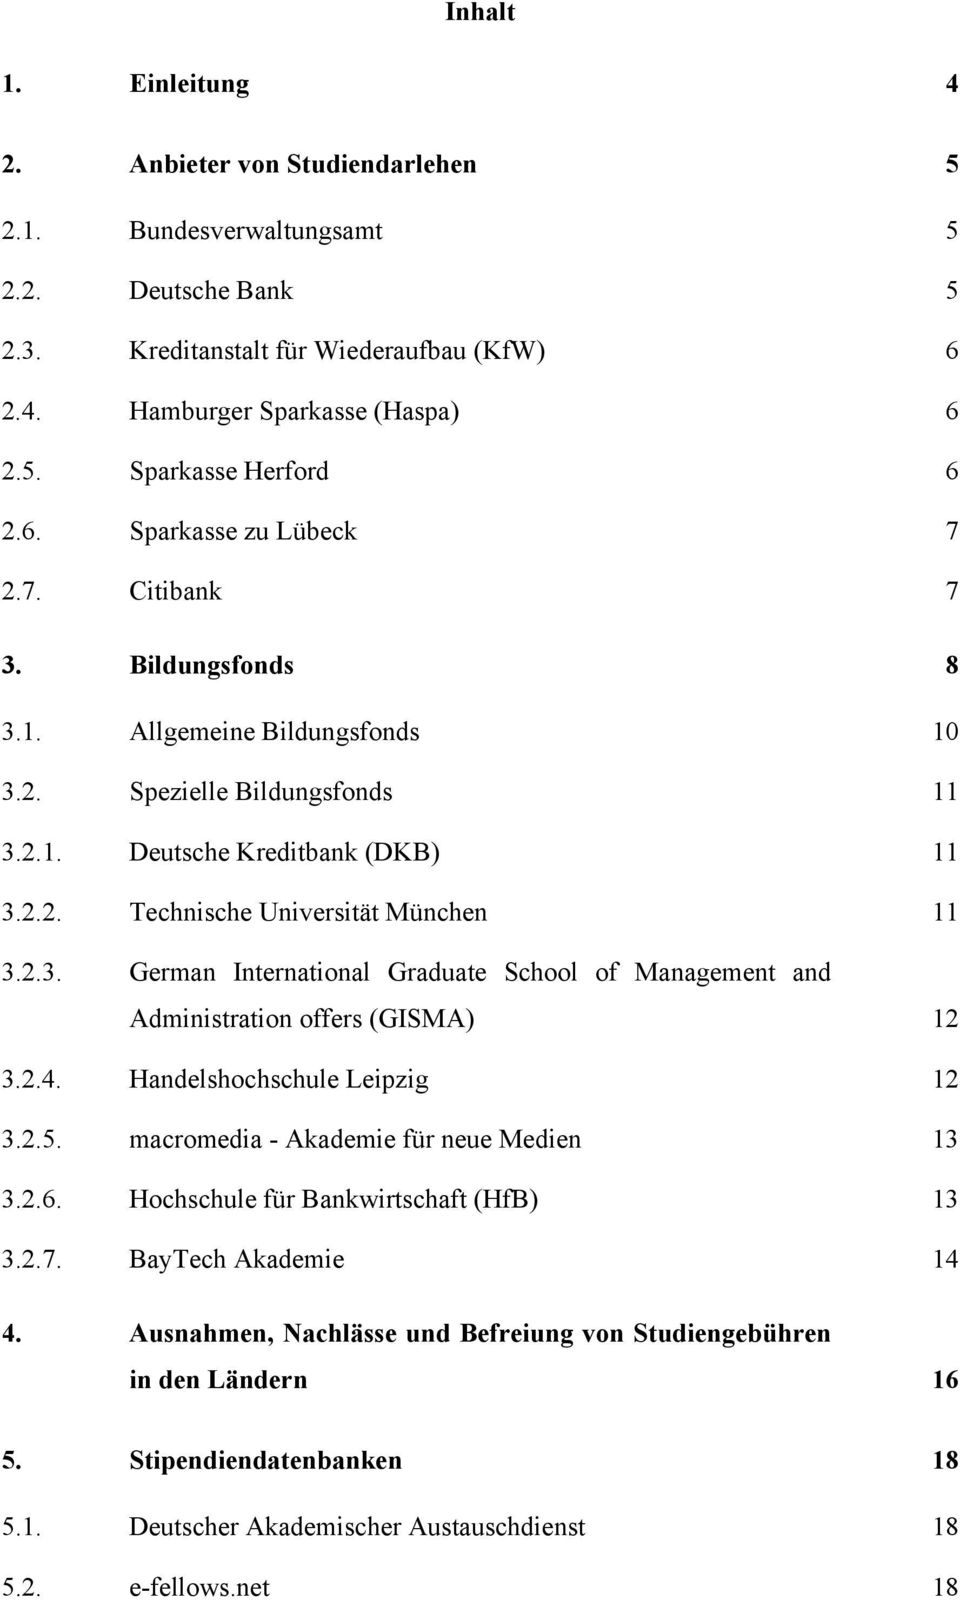 2.3. German International Graduate School of Management and Administration offers (GISMA) 12 3.2.4. Handelshochschule Leipzig 12 3.2.5. macromedia - Akademie für neue Medien 13 3.2.6.